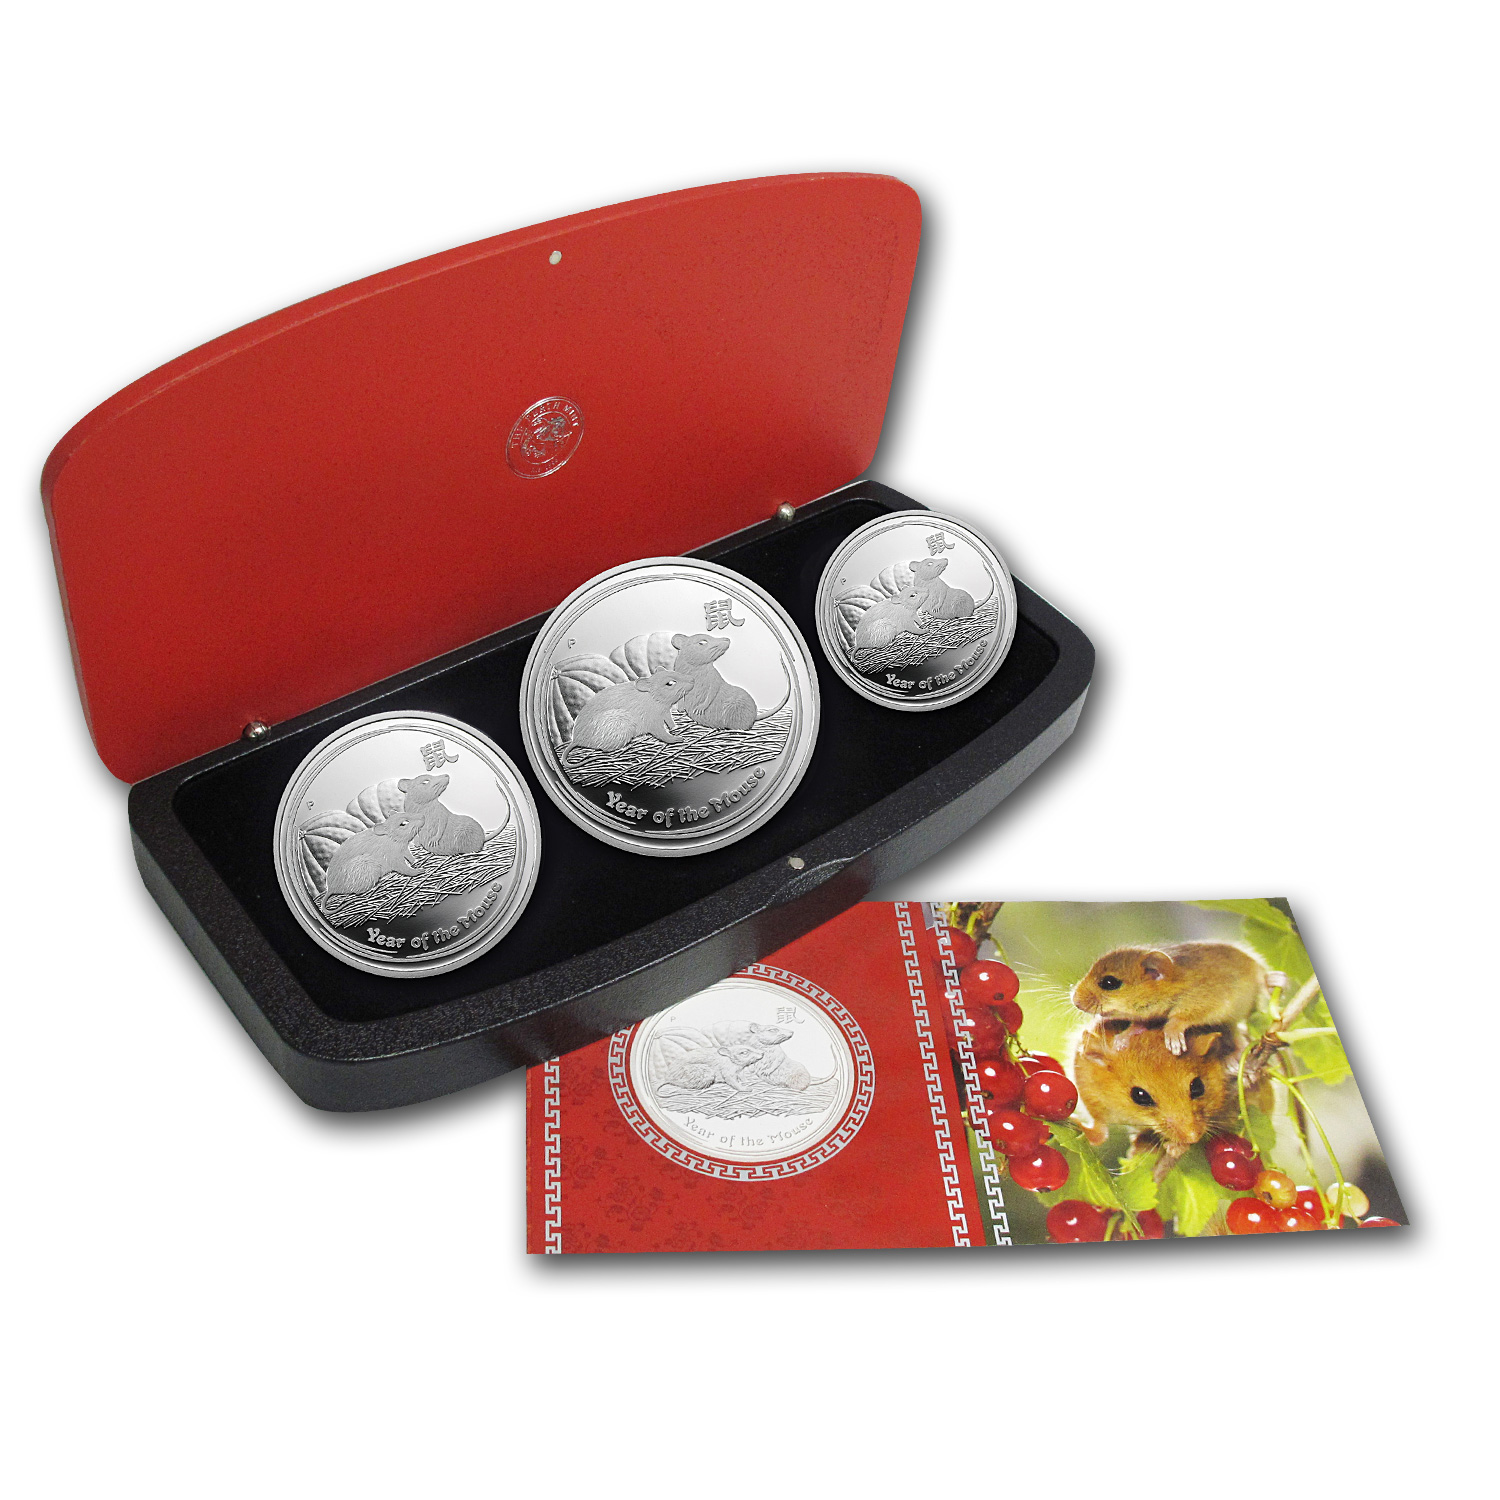 2008 Australia 3-Coin Silver Year of the Mouse Proof Set